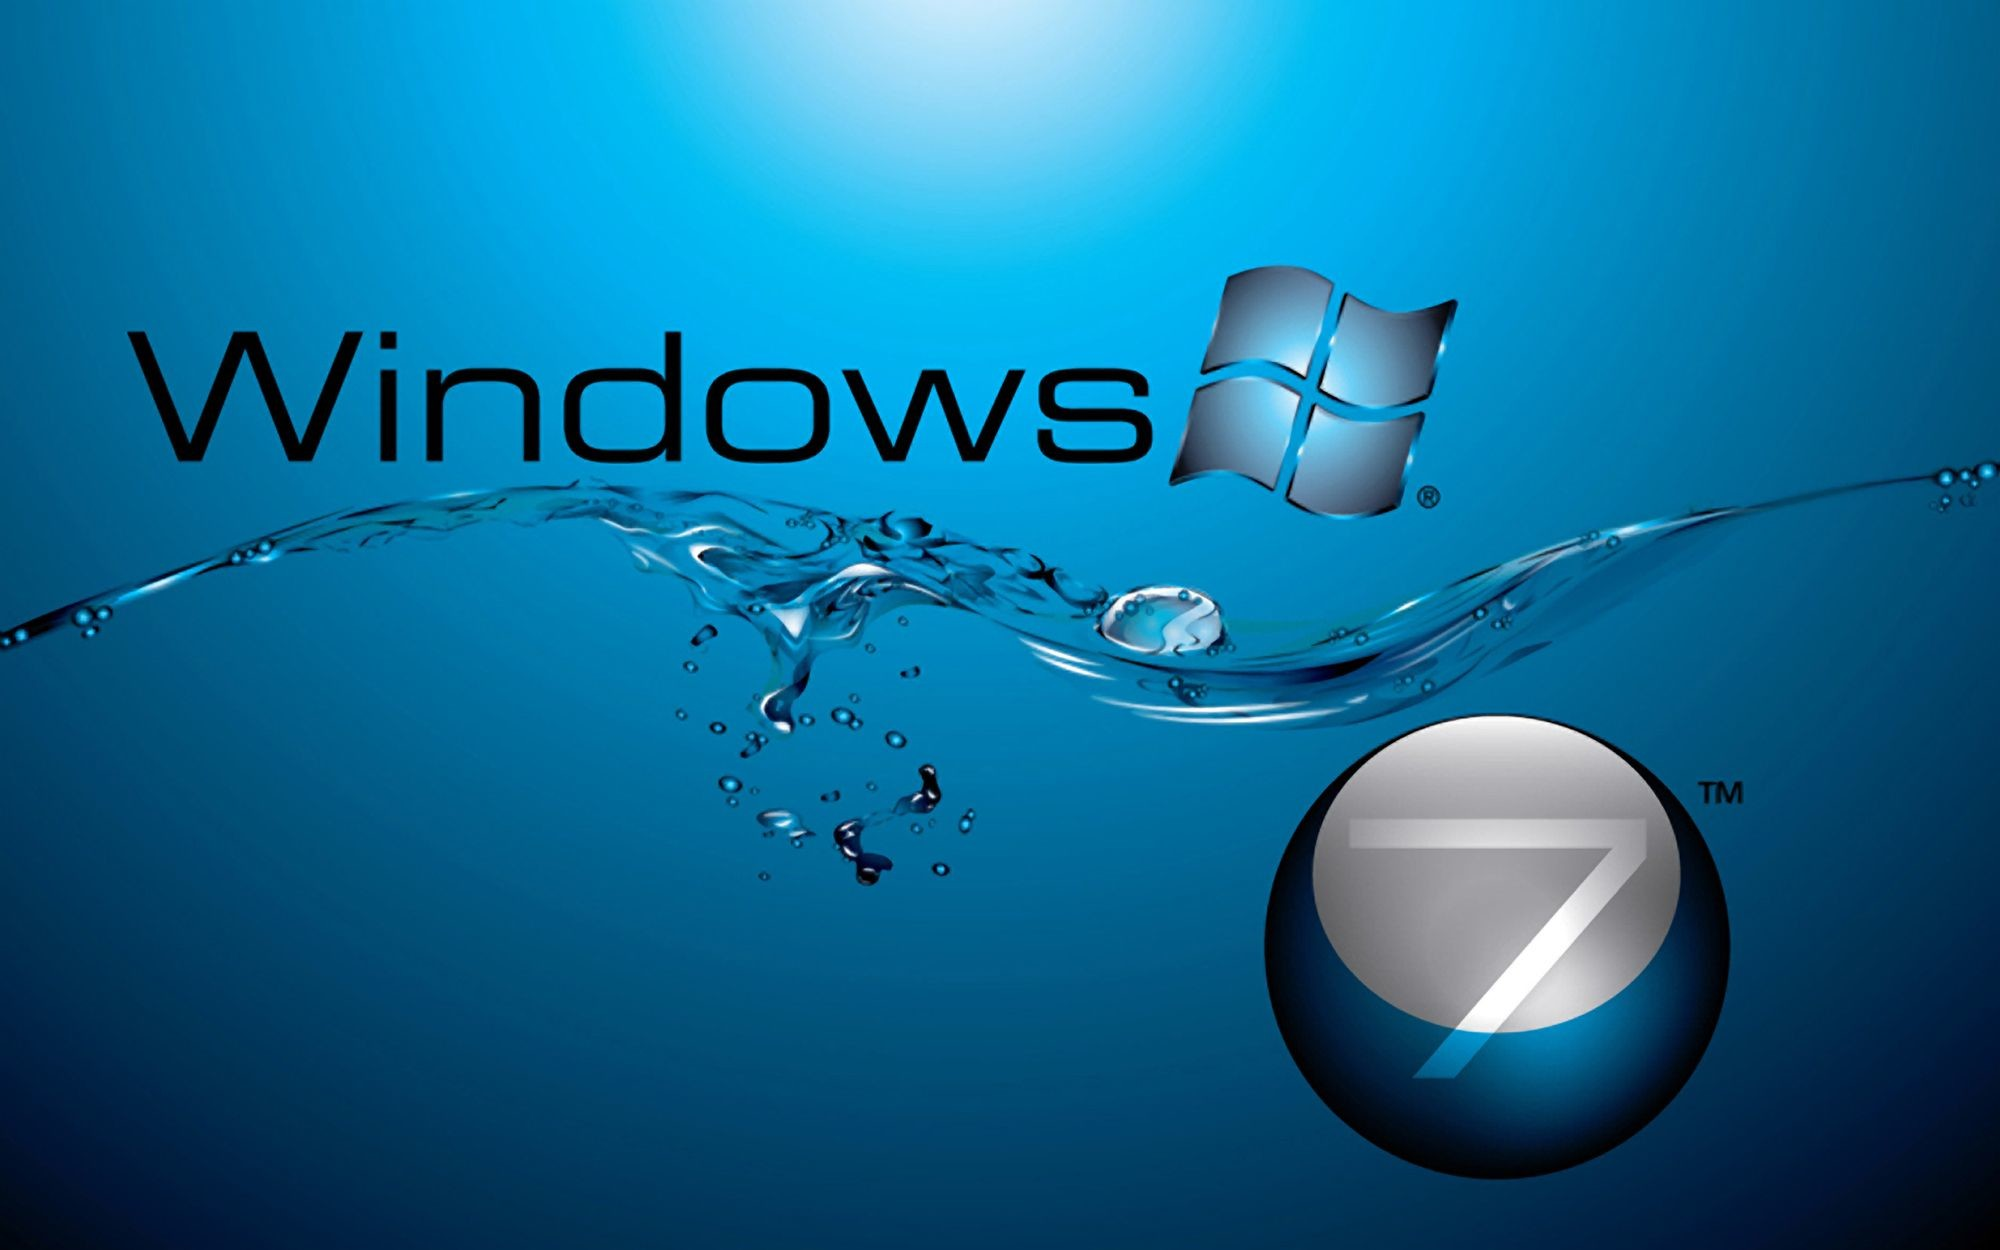 2000x1250 Windows Desktop Wallpaper High Quality Wallpapers For Windows 7 Wallpapers)